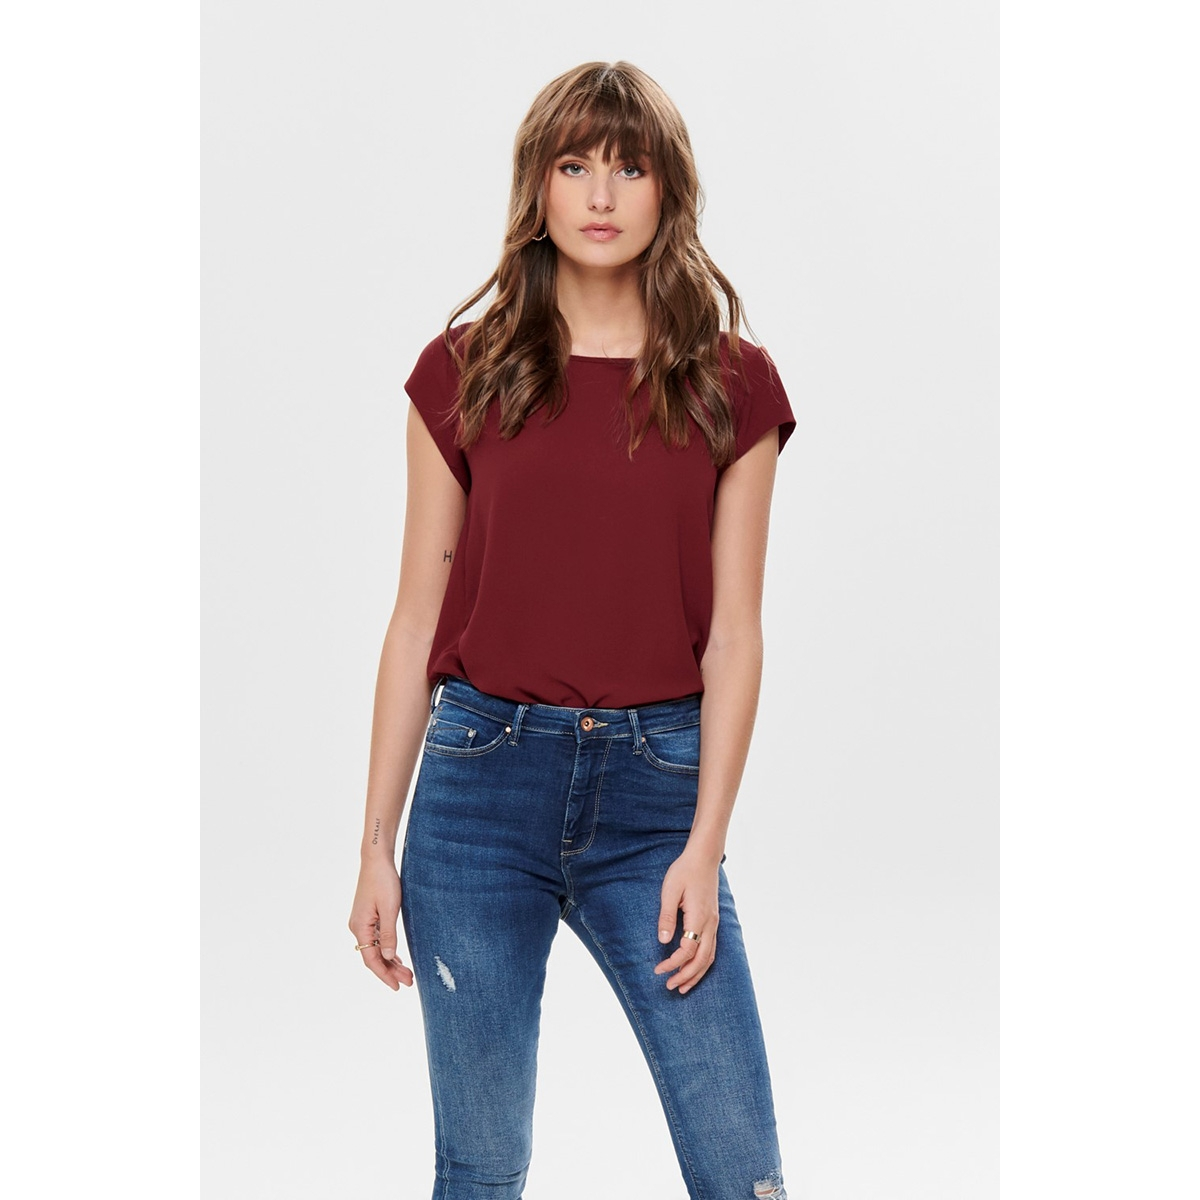 onlvic s/s solid top noos wvn 15142784 only t-shirt merlot